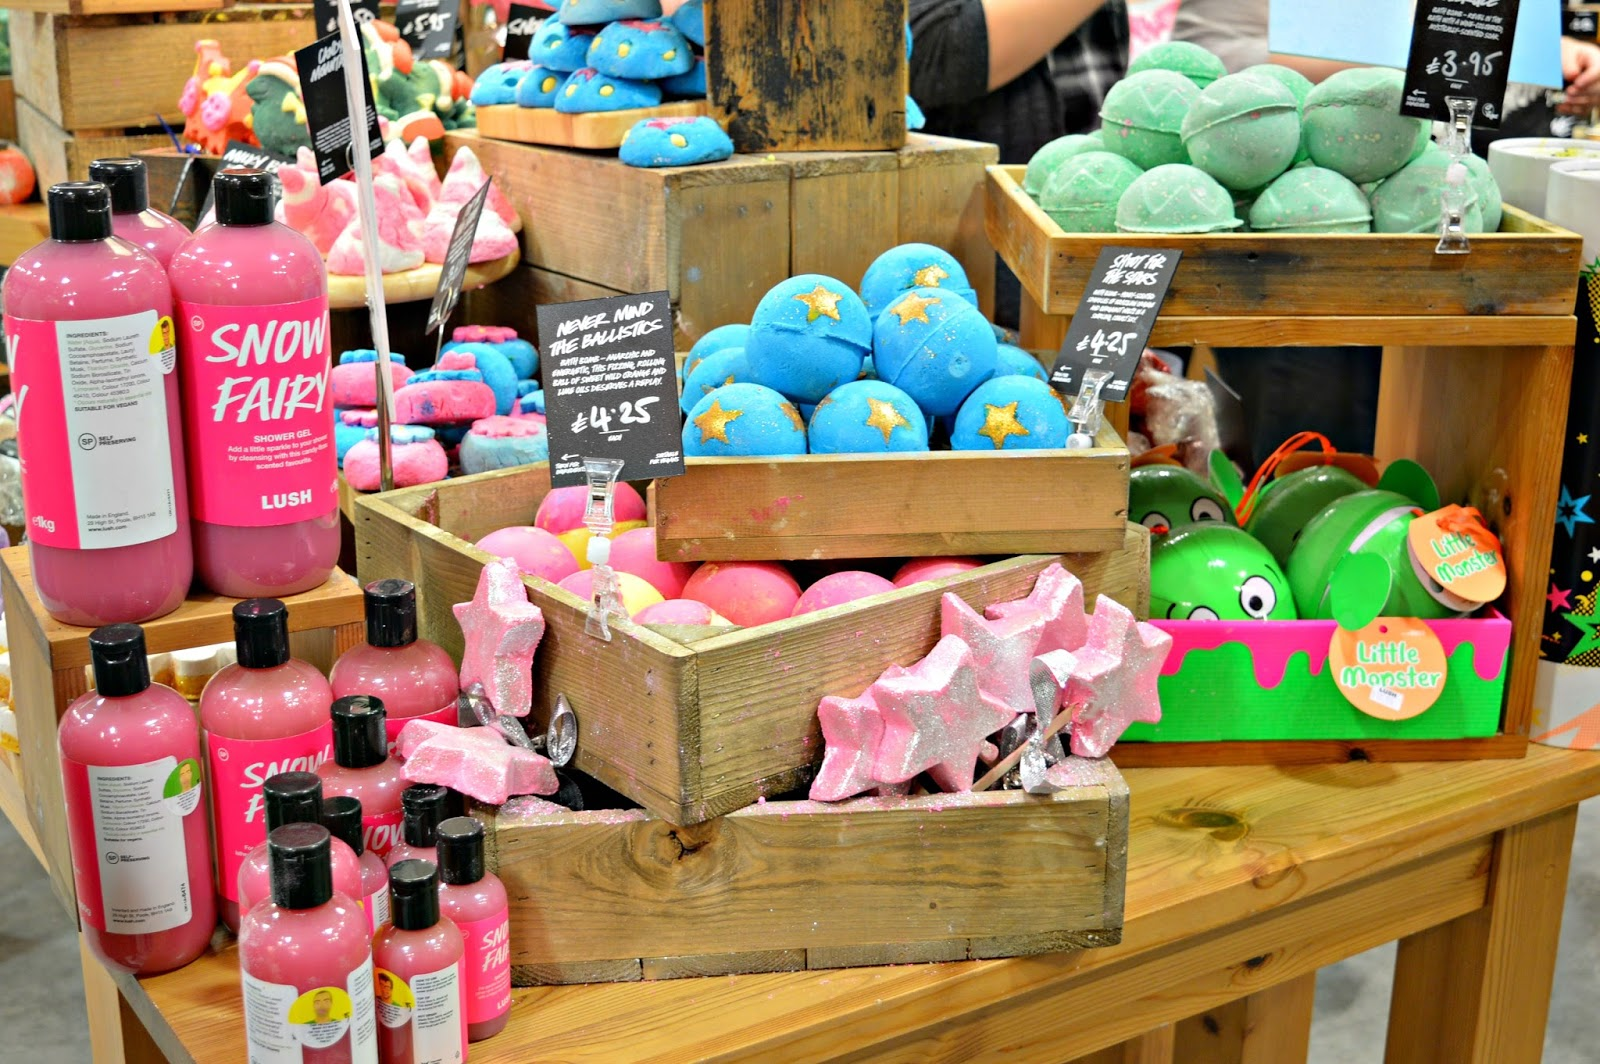 bath bombs lush shower gel